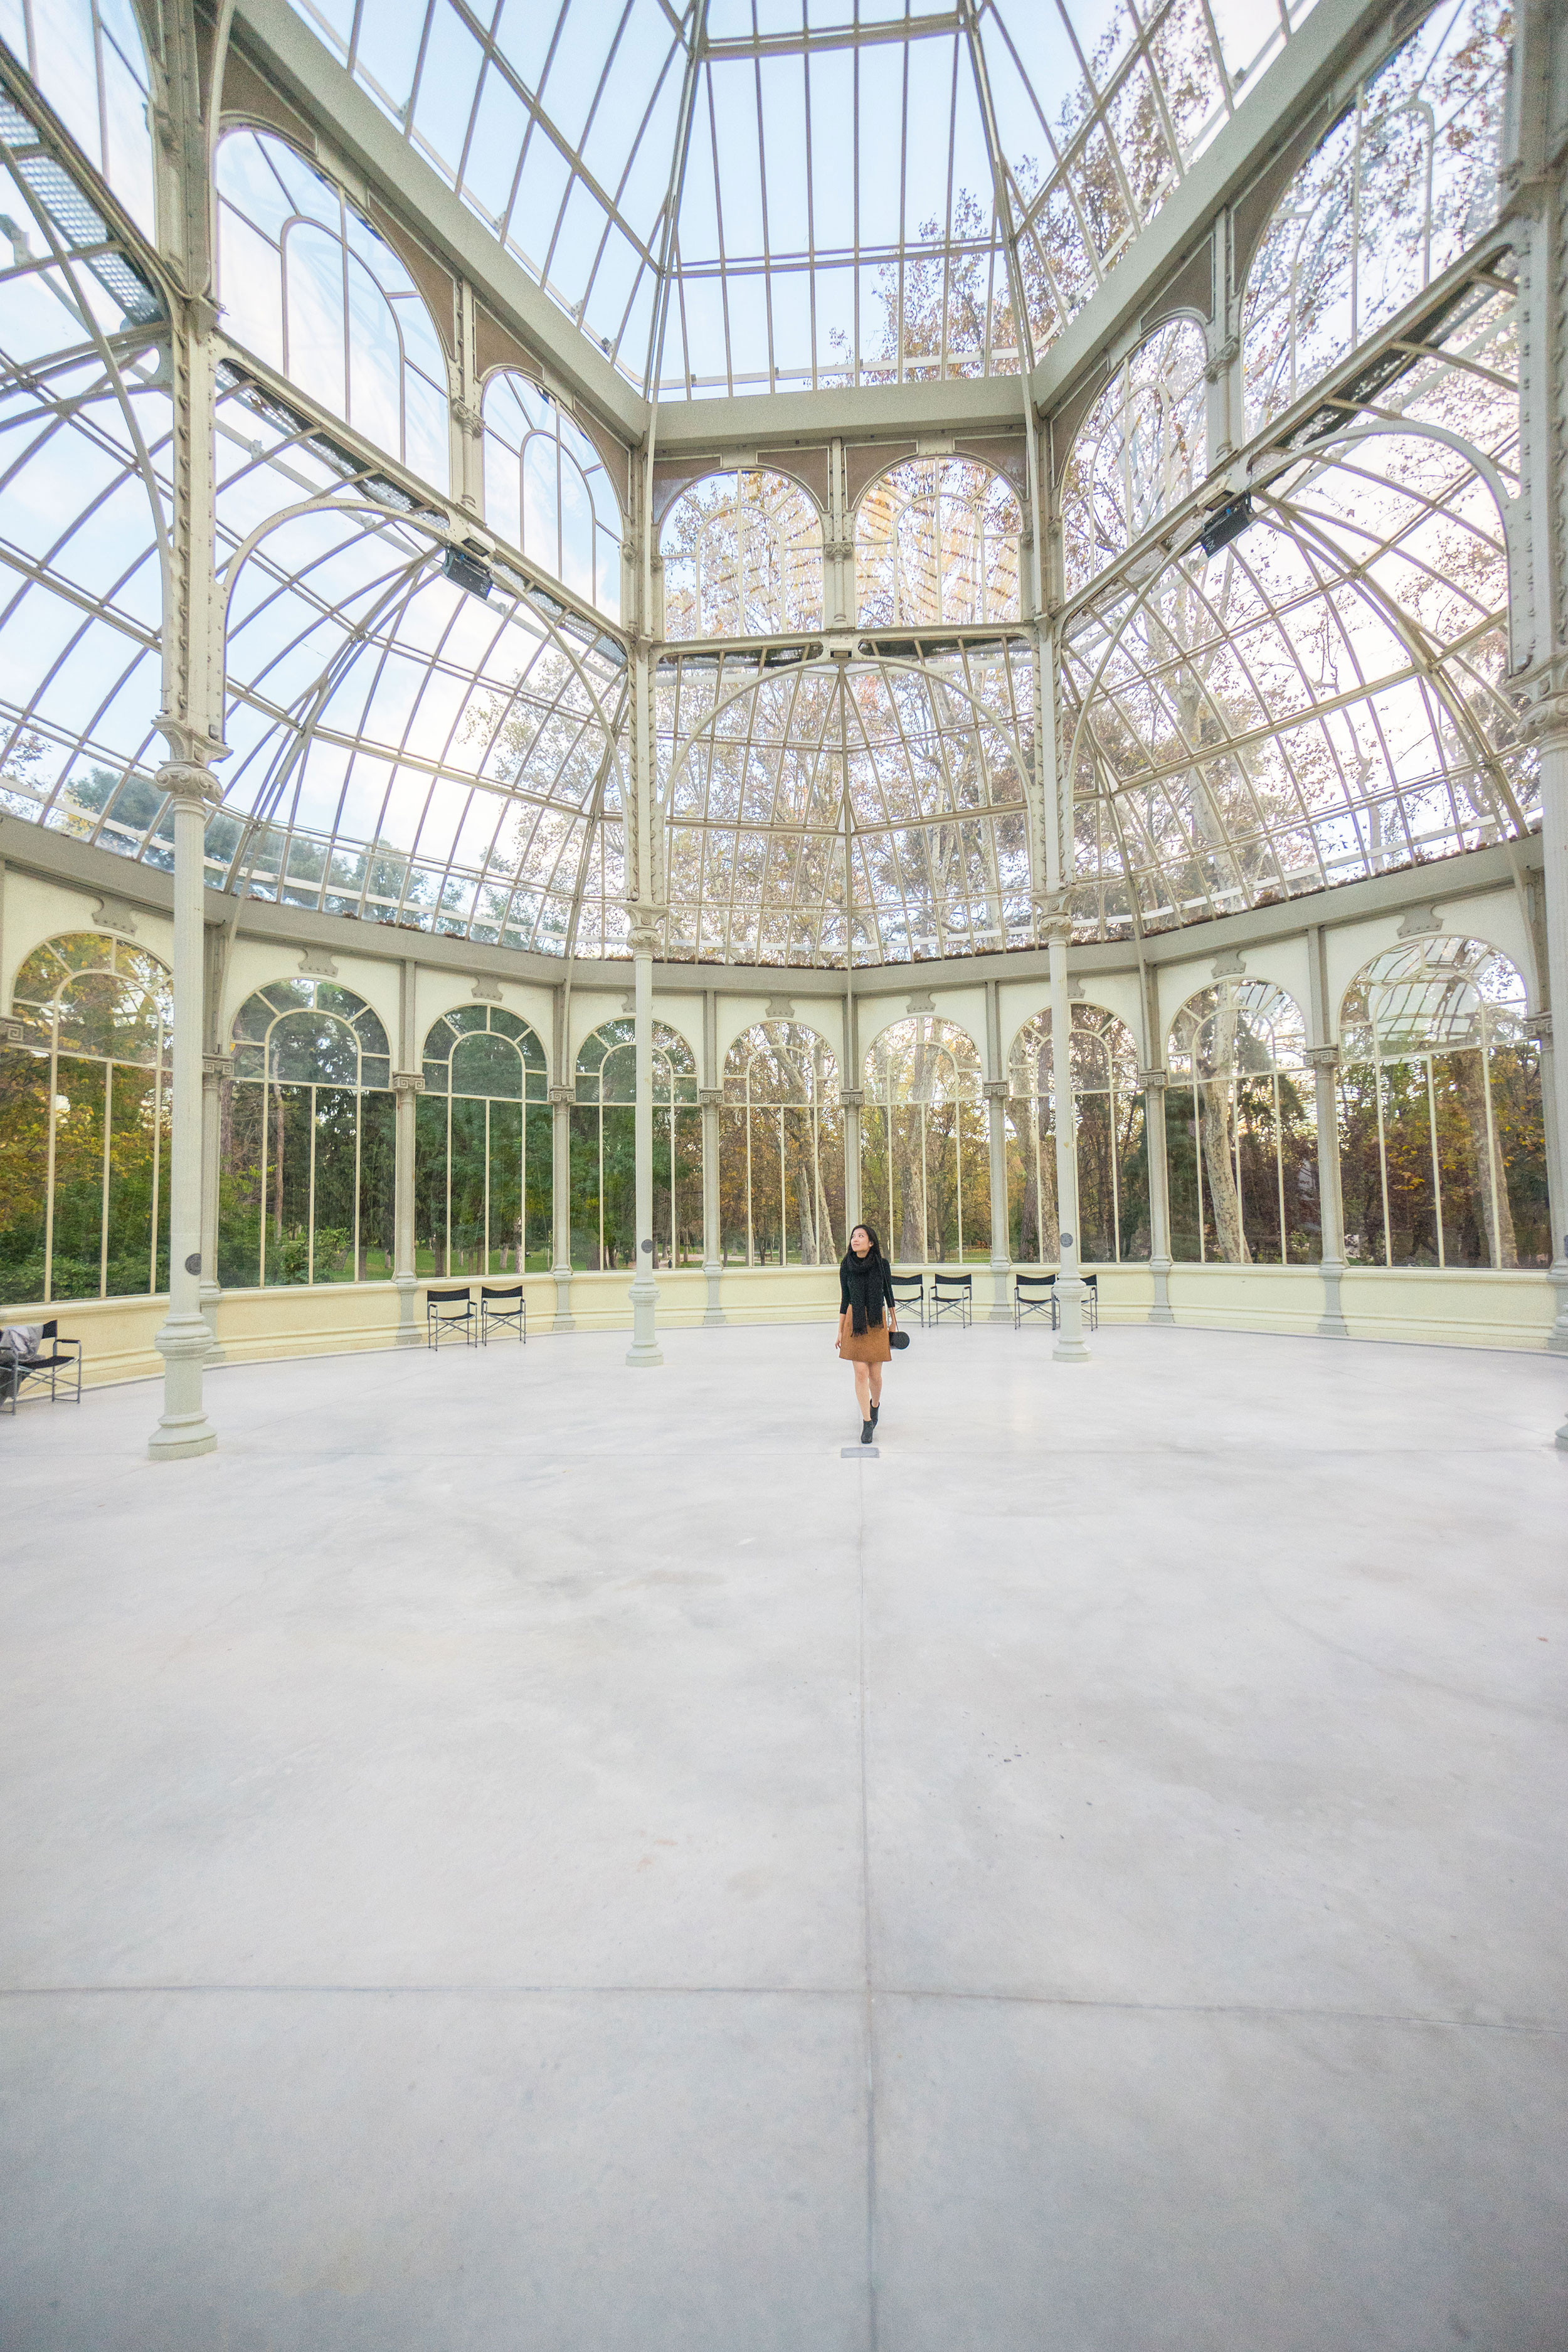 Palacio de Cristal  was originally built in 1887 to exhibit tropical flora and fauna from the Philippines.